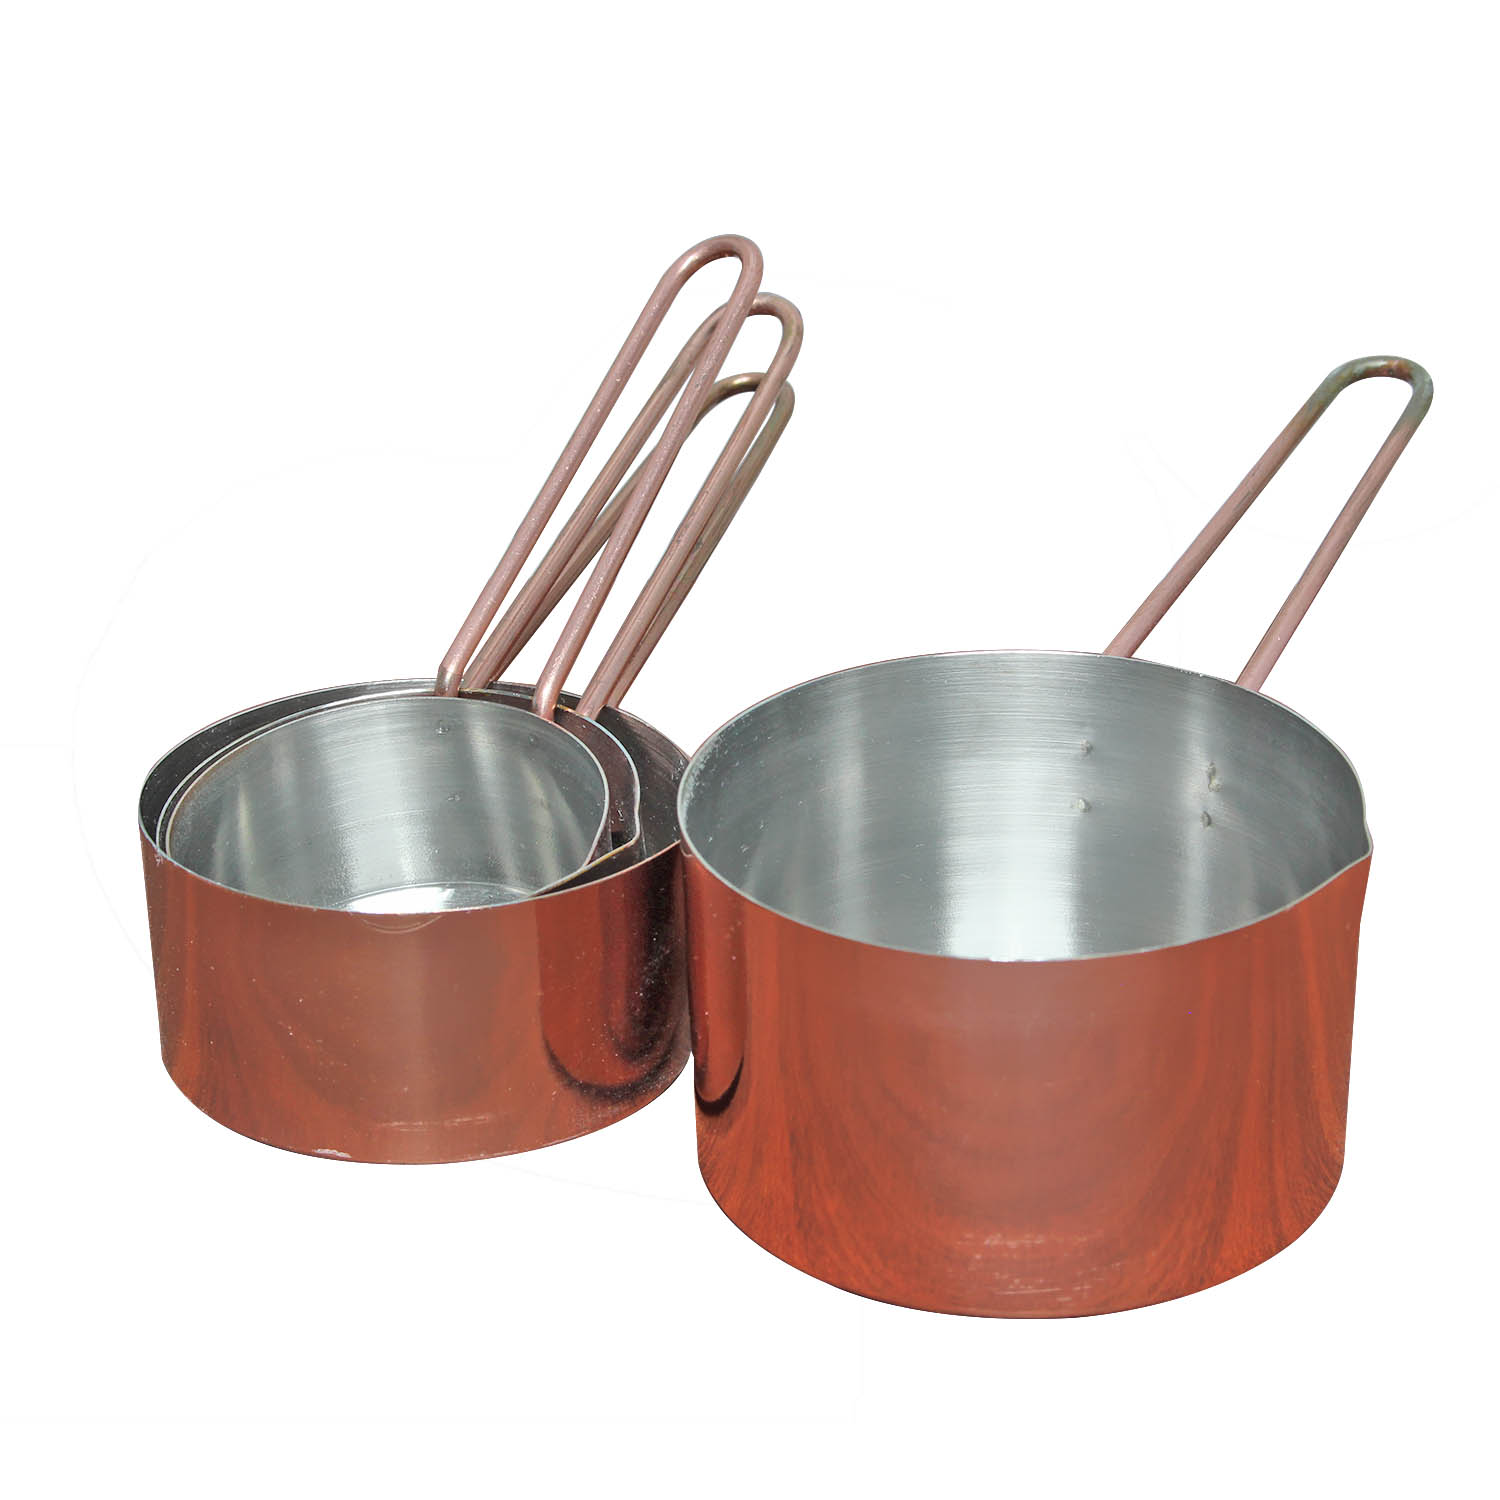 Set Of 4 Stainless Steel Copper Measuring Cups Set Baking